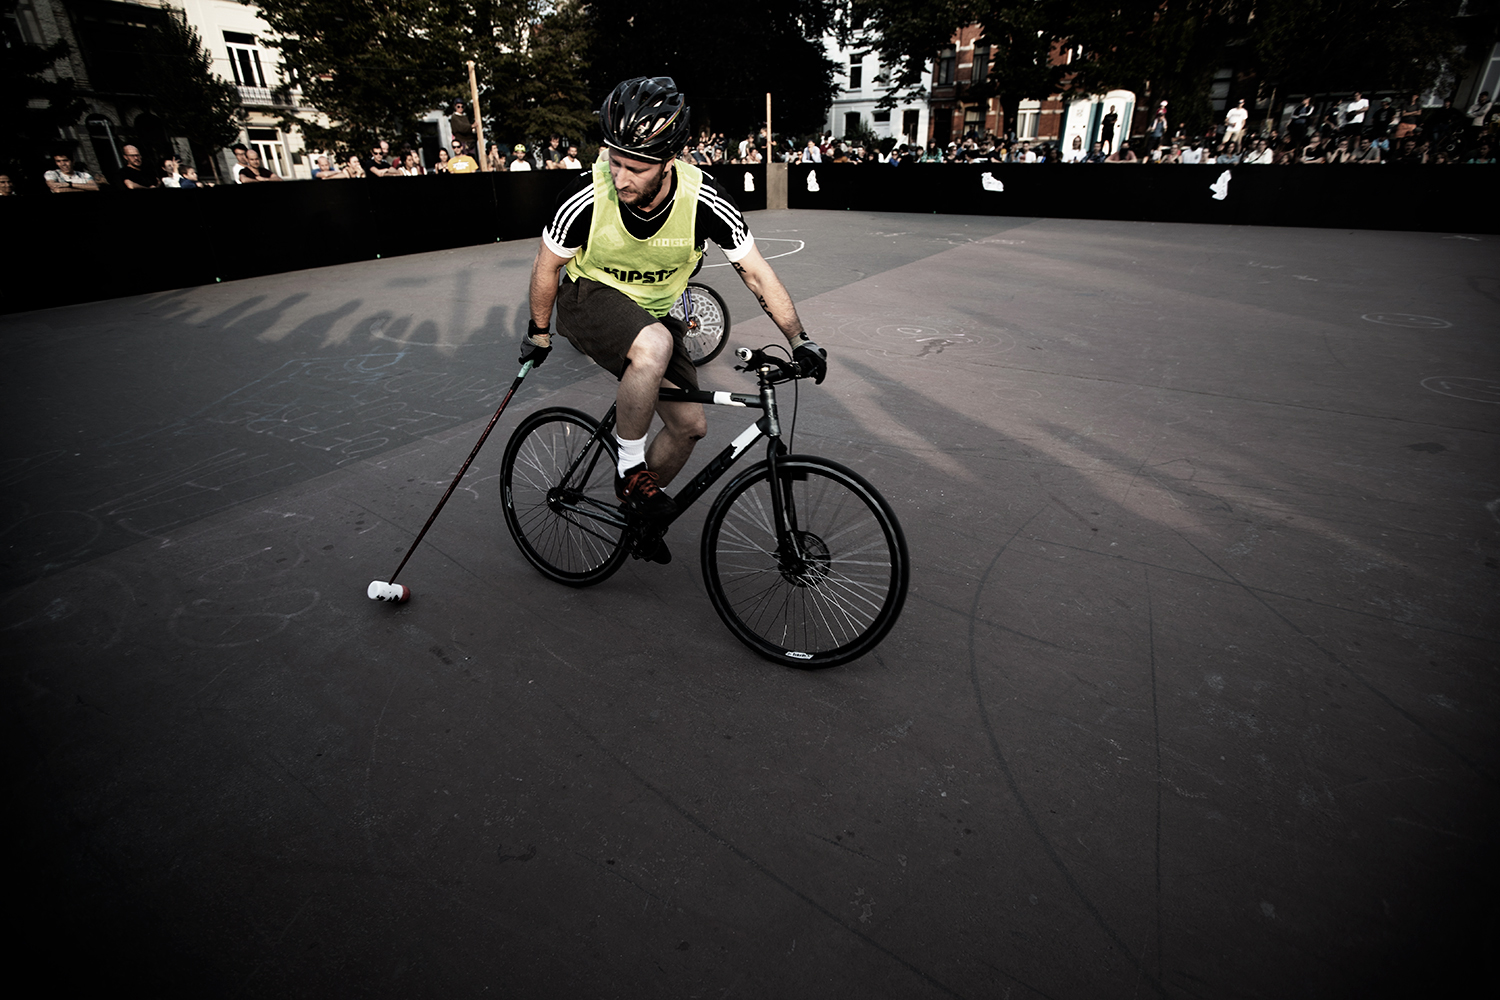 Brussels Bike Polo - Le Grand Royal 10 - 2021 by Laurent Orseau #20